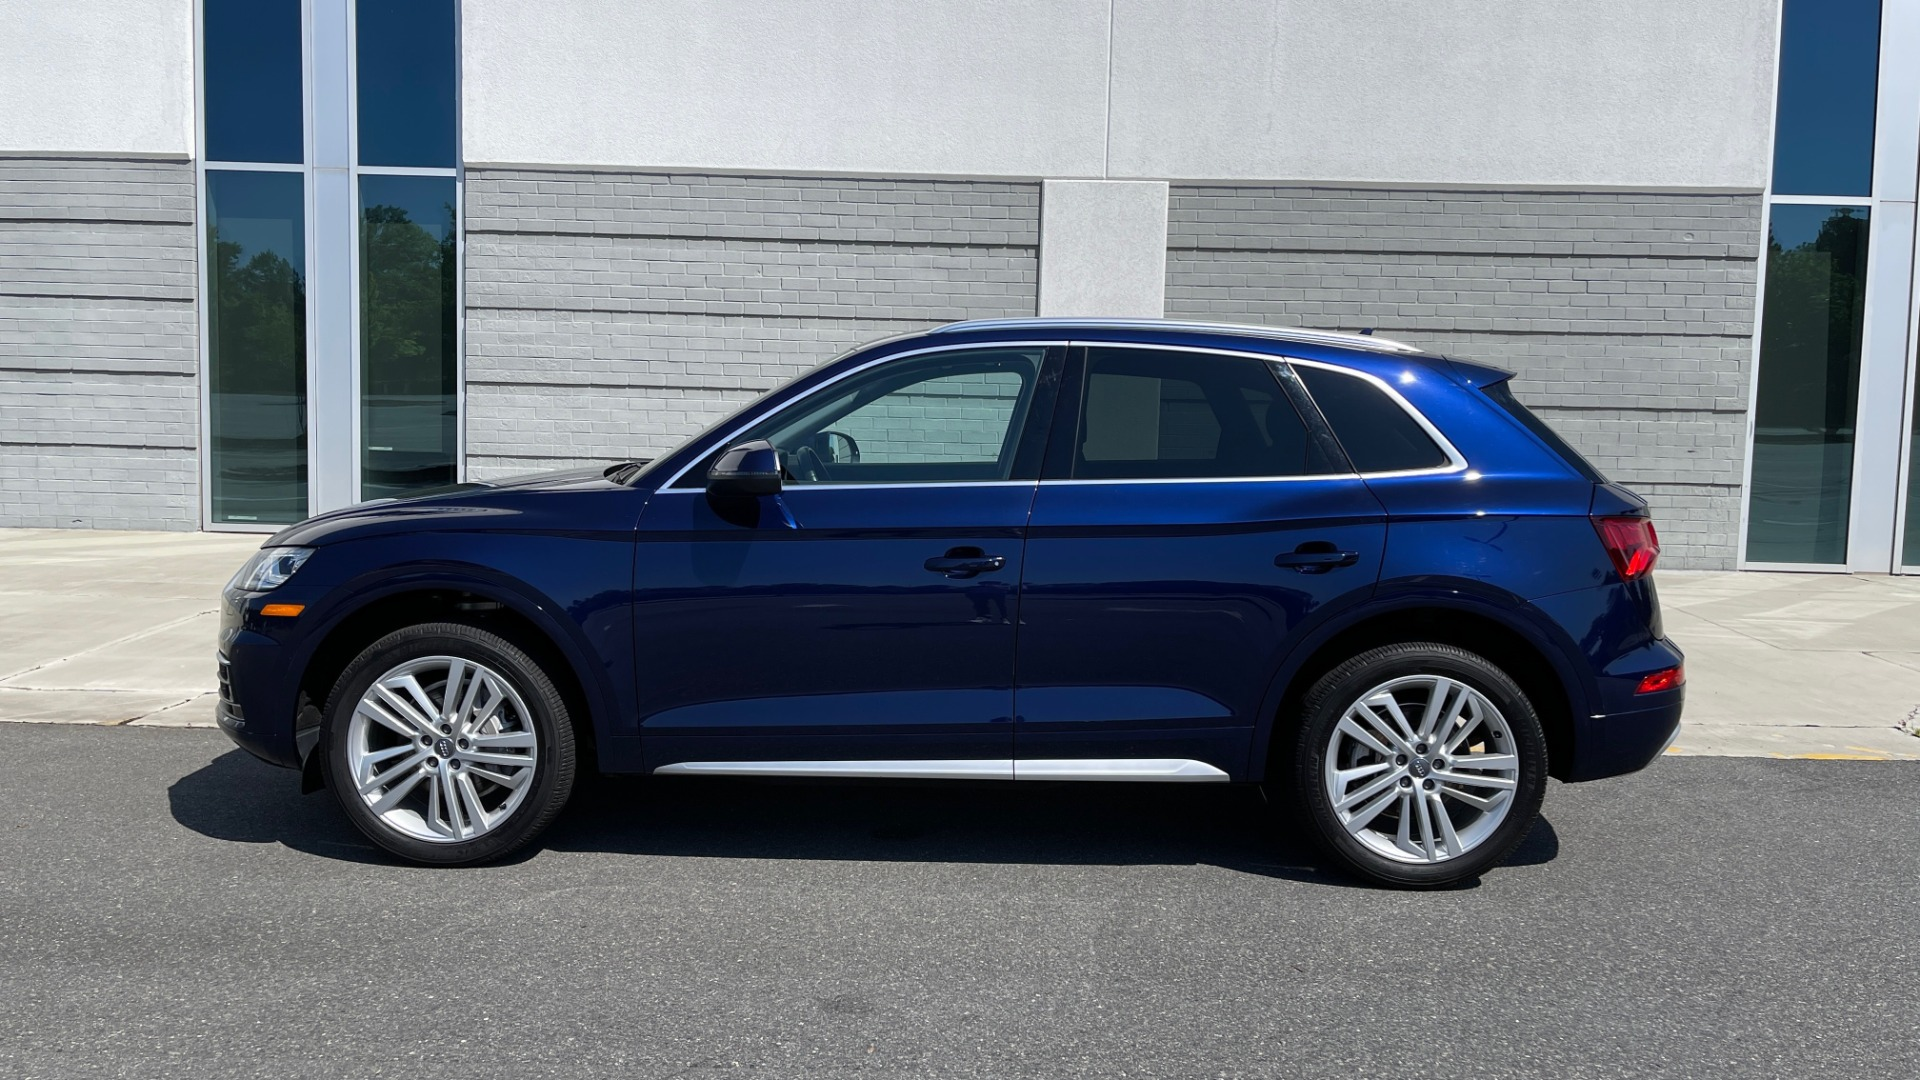 Used 2018 Audi Q5 PREMIUM PLUS / NAV / PANO-ROOF / PARK SYSTEM / REARVIEW for sale $33,695 at Formula Imports in Charlotte NC 28227 4